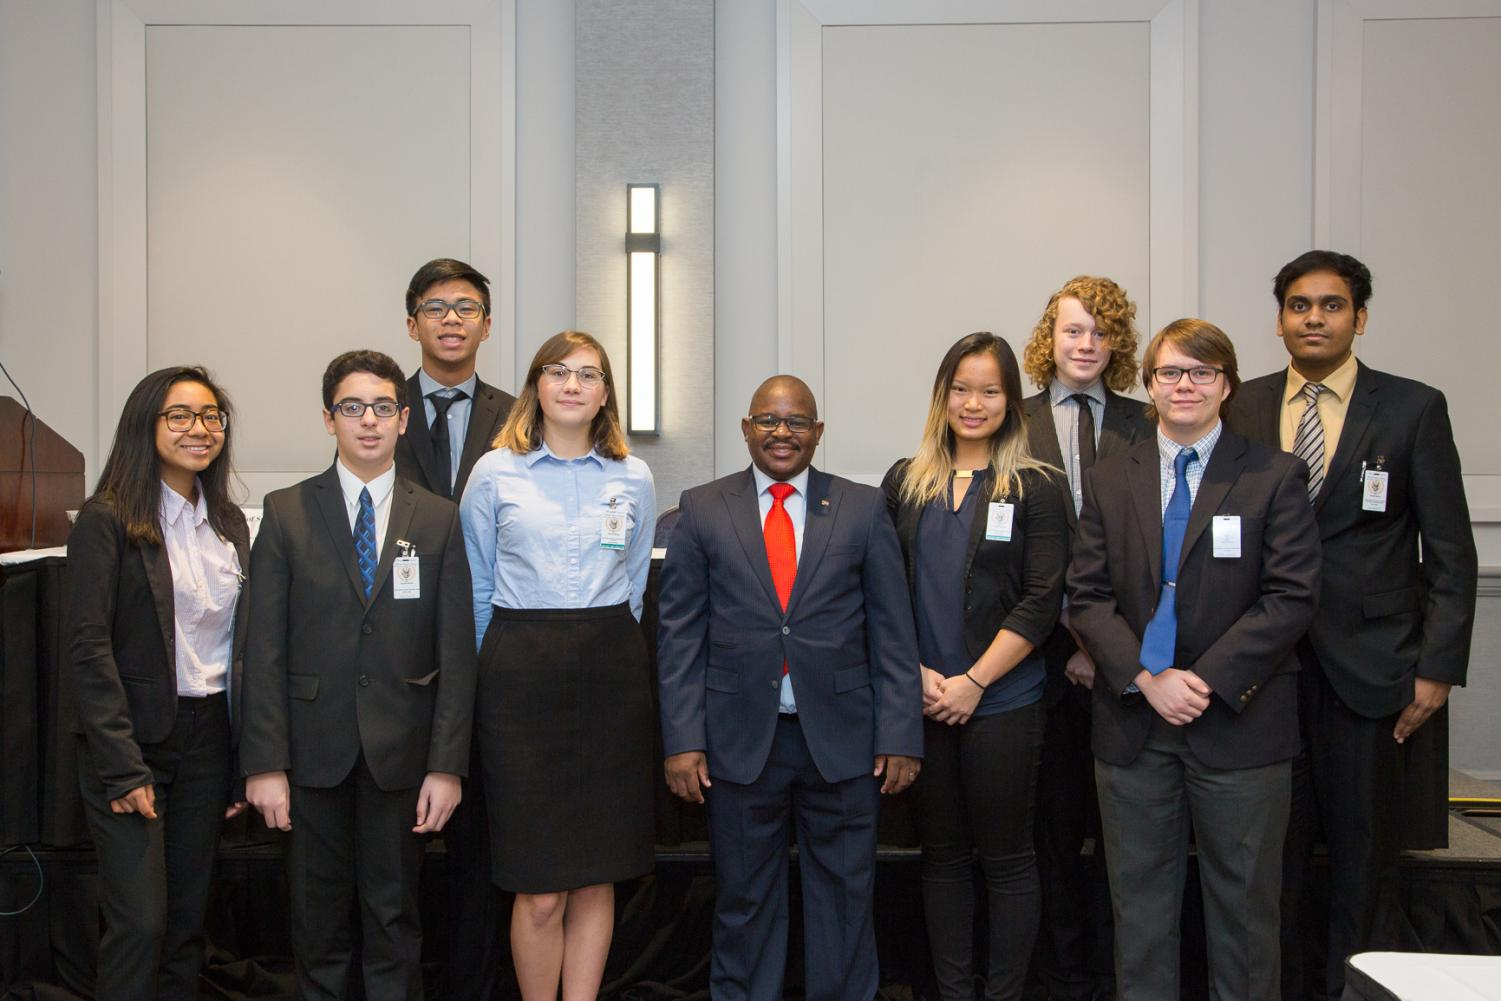 Members of the Niles West Model United Nations delegation meet with the Consulate-General of South Africa.